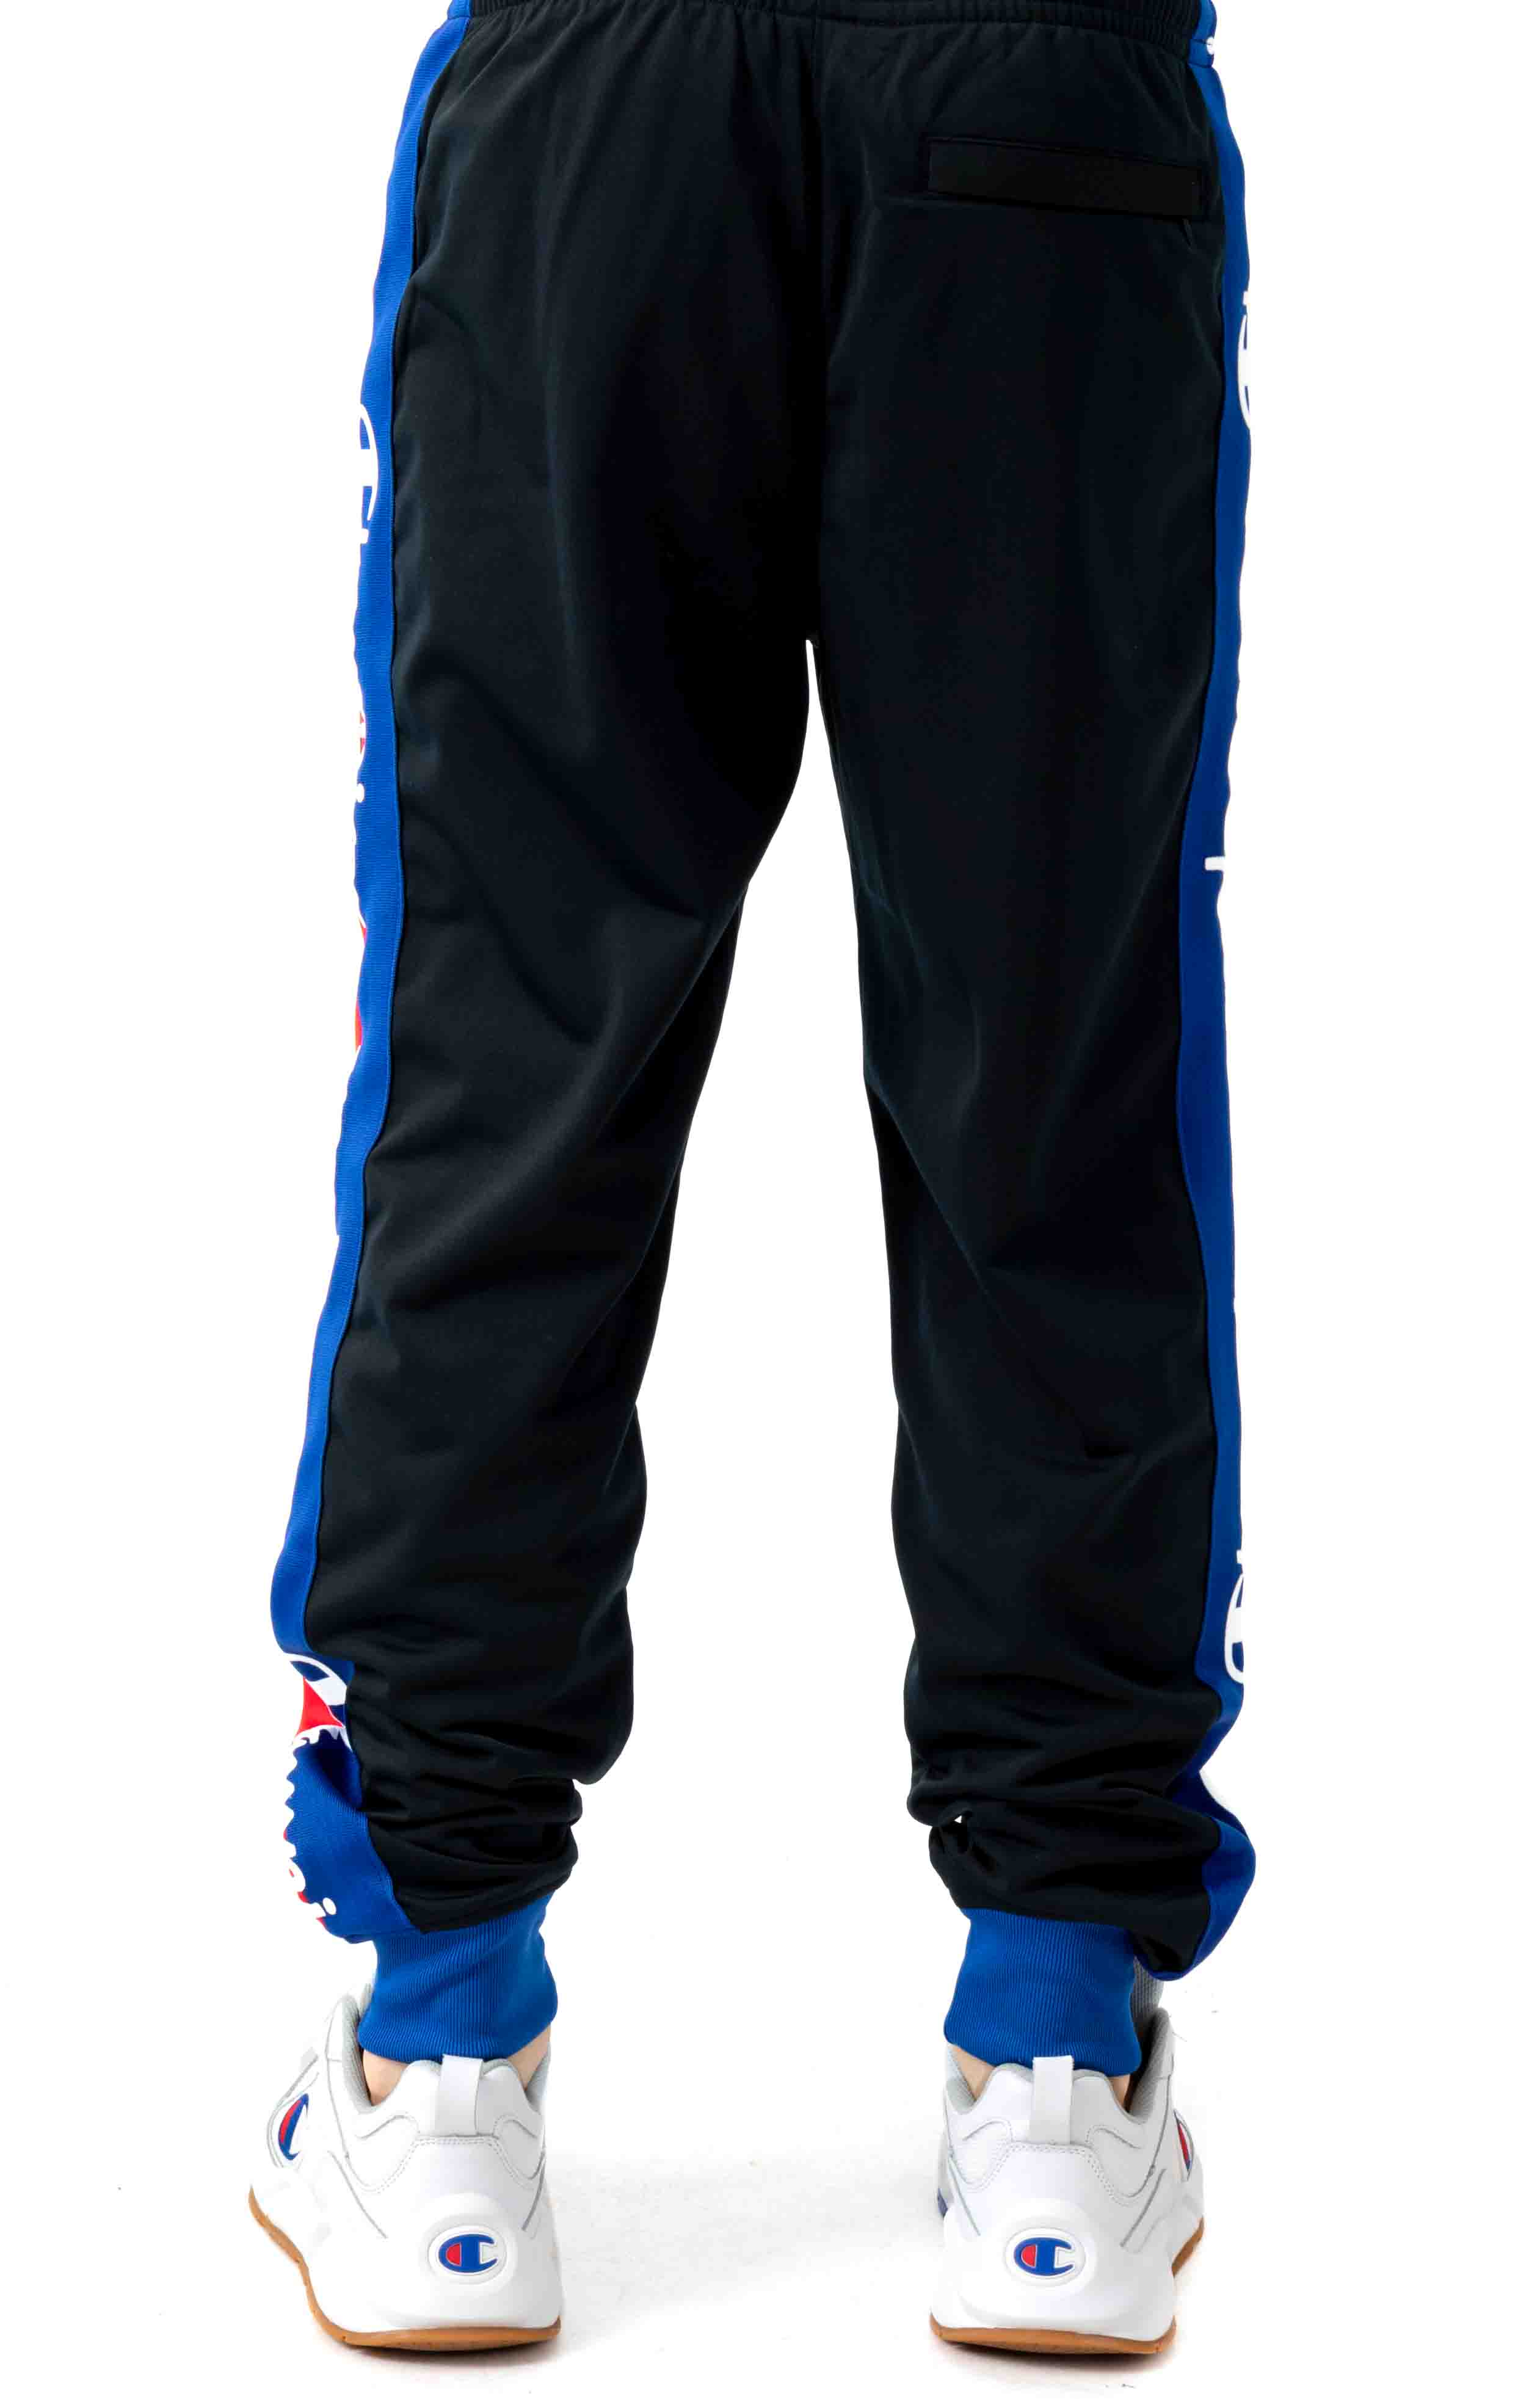 Tricot Track Pant w/ Champion Taping - Black/Surf the Web 3